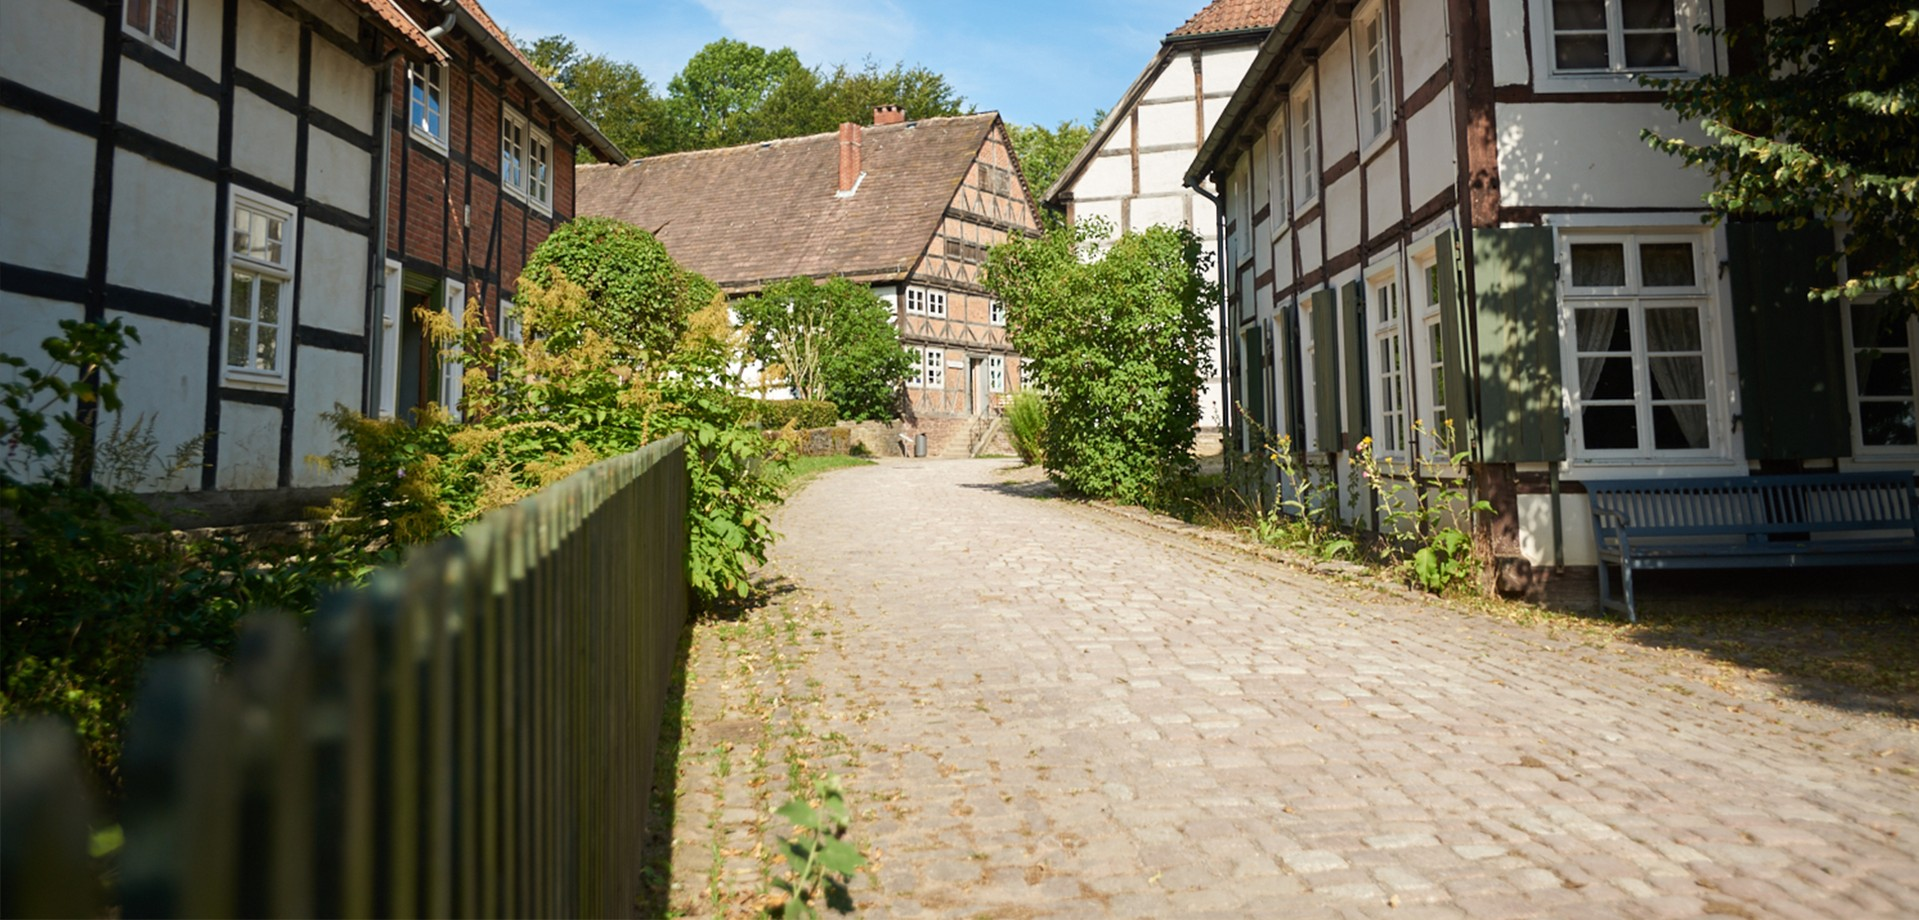 A path in the Paderborn Village between historic buildings.